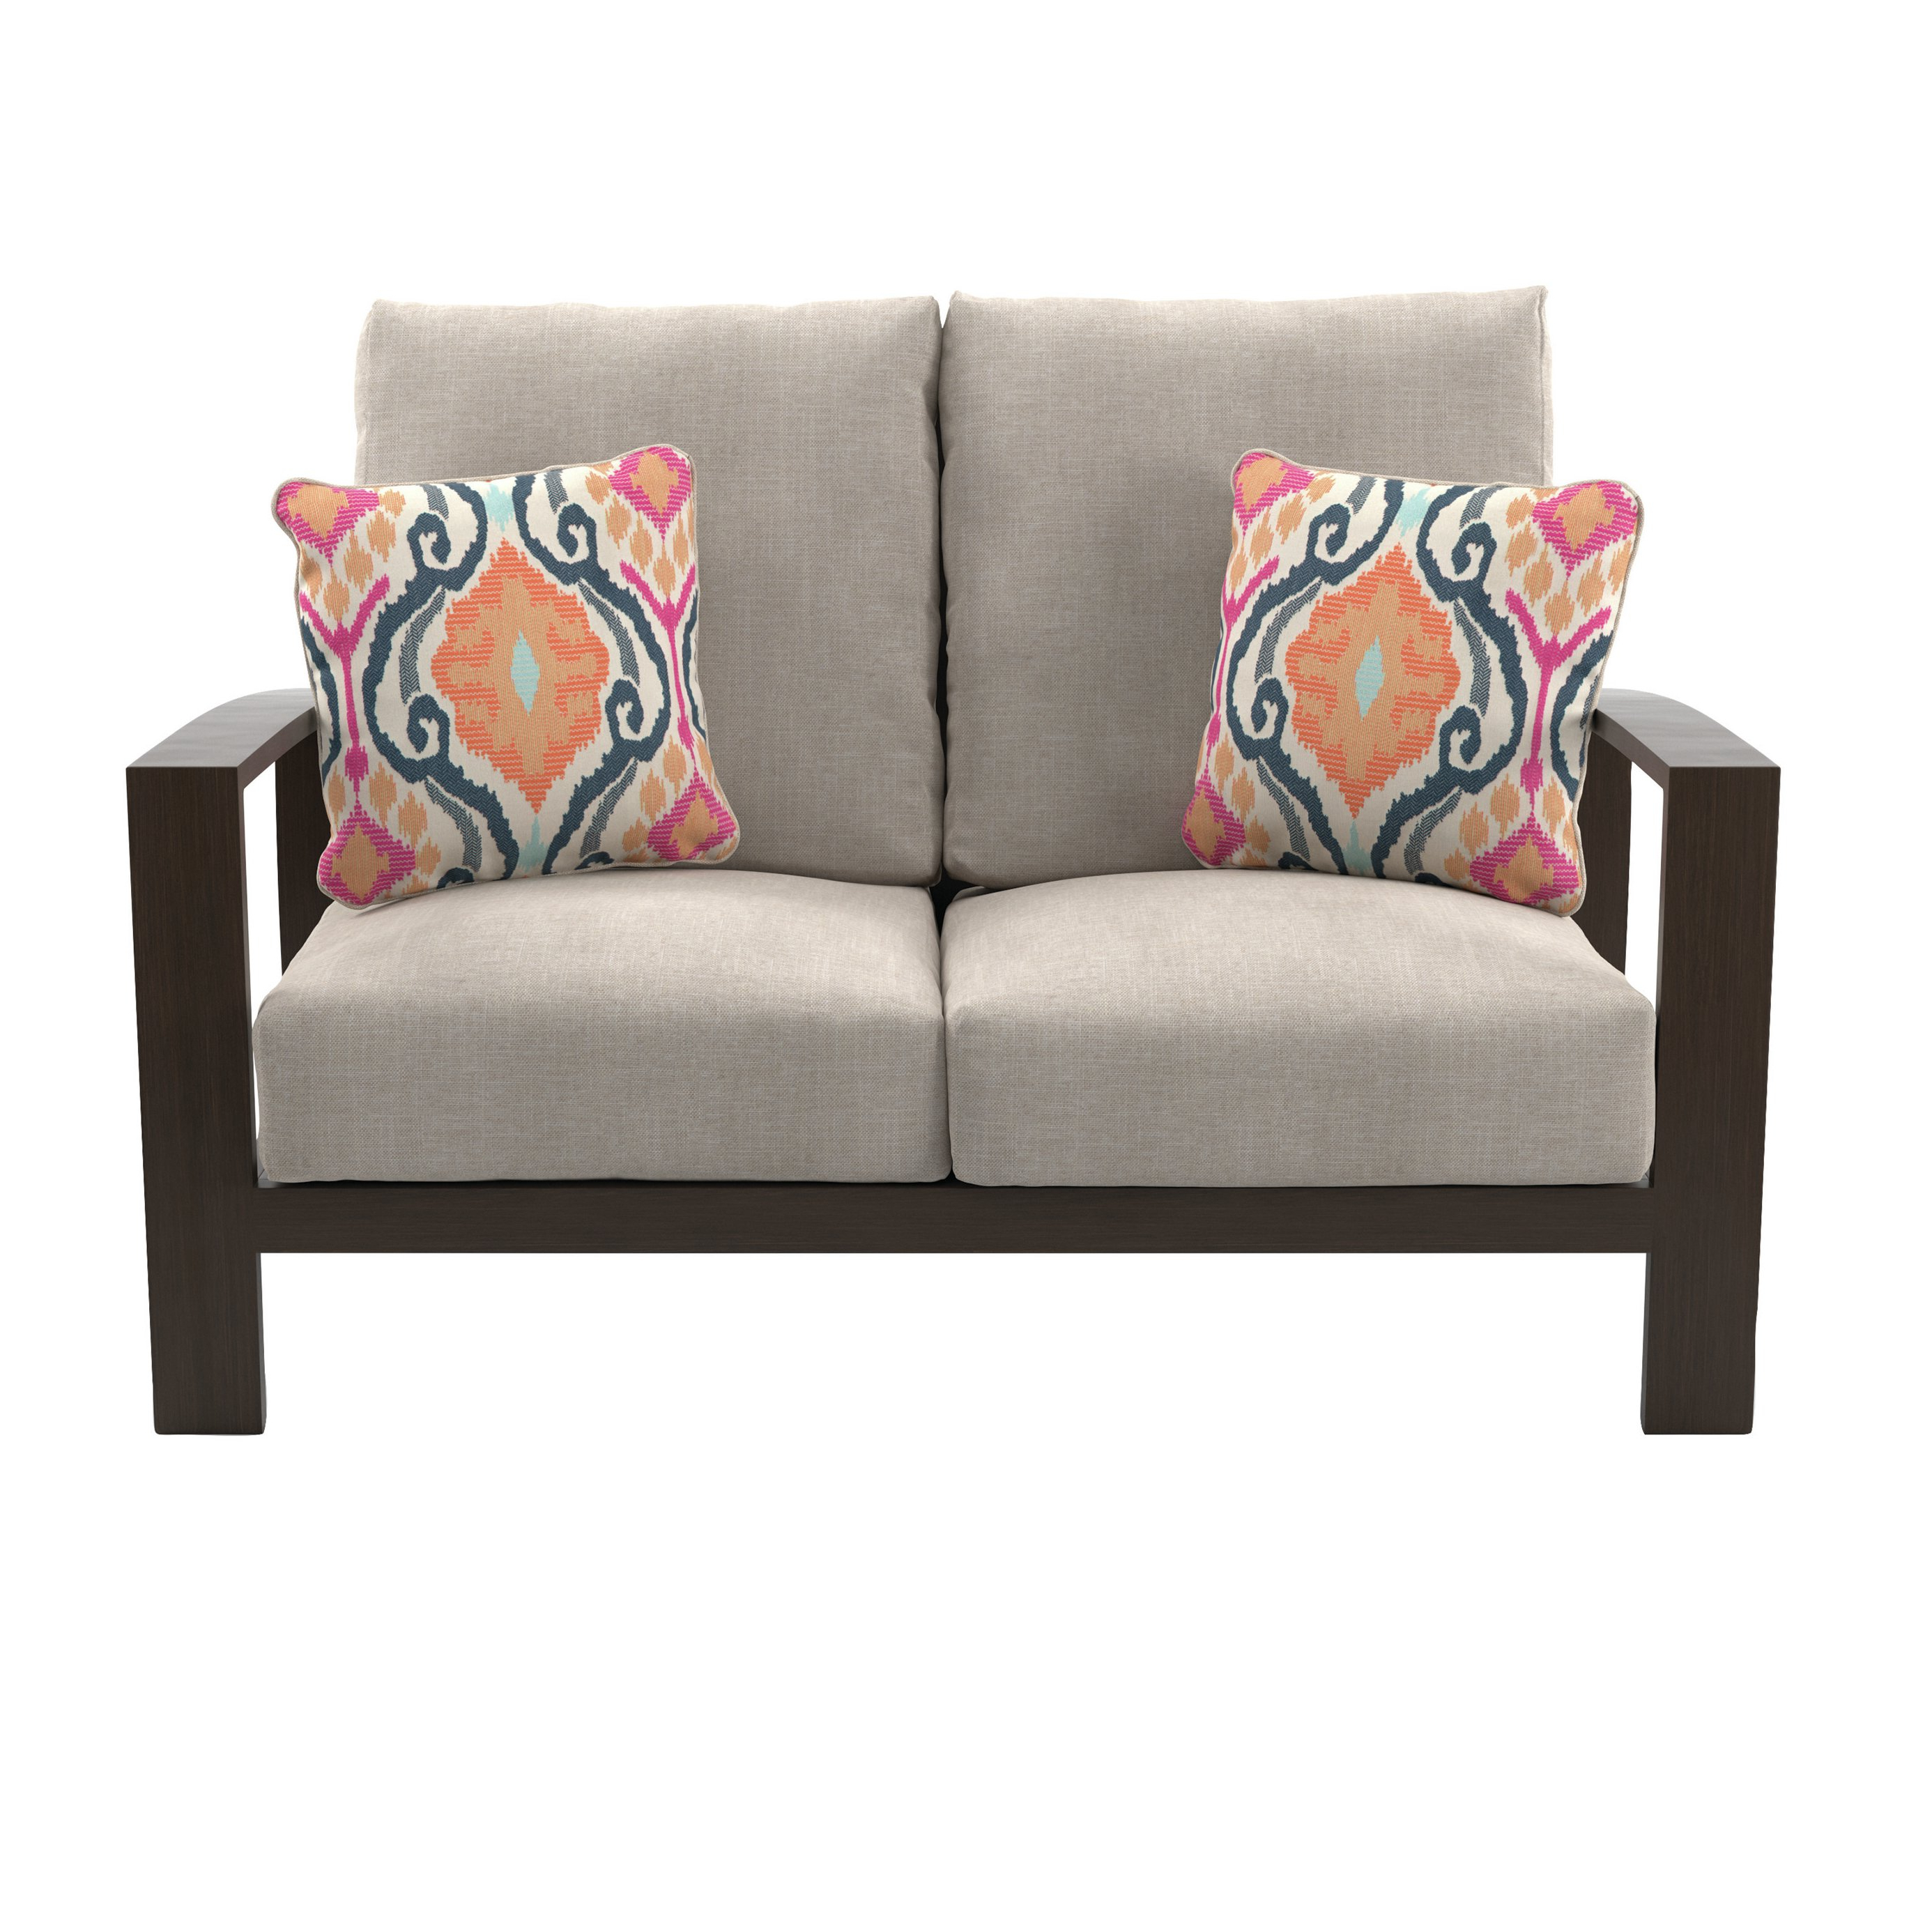 Trendy Loggins Loveseats With Cushions Regarding Jay Loveseat With Cushions (View 13 of 20)